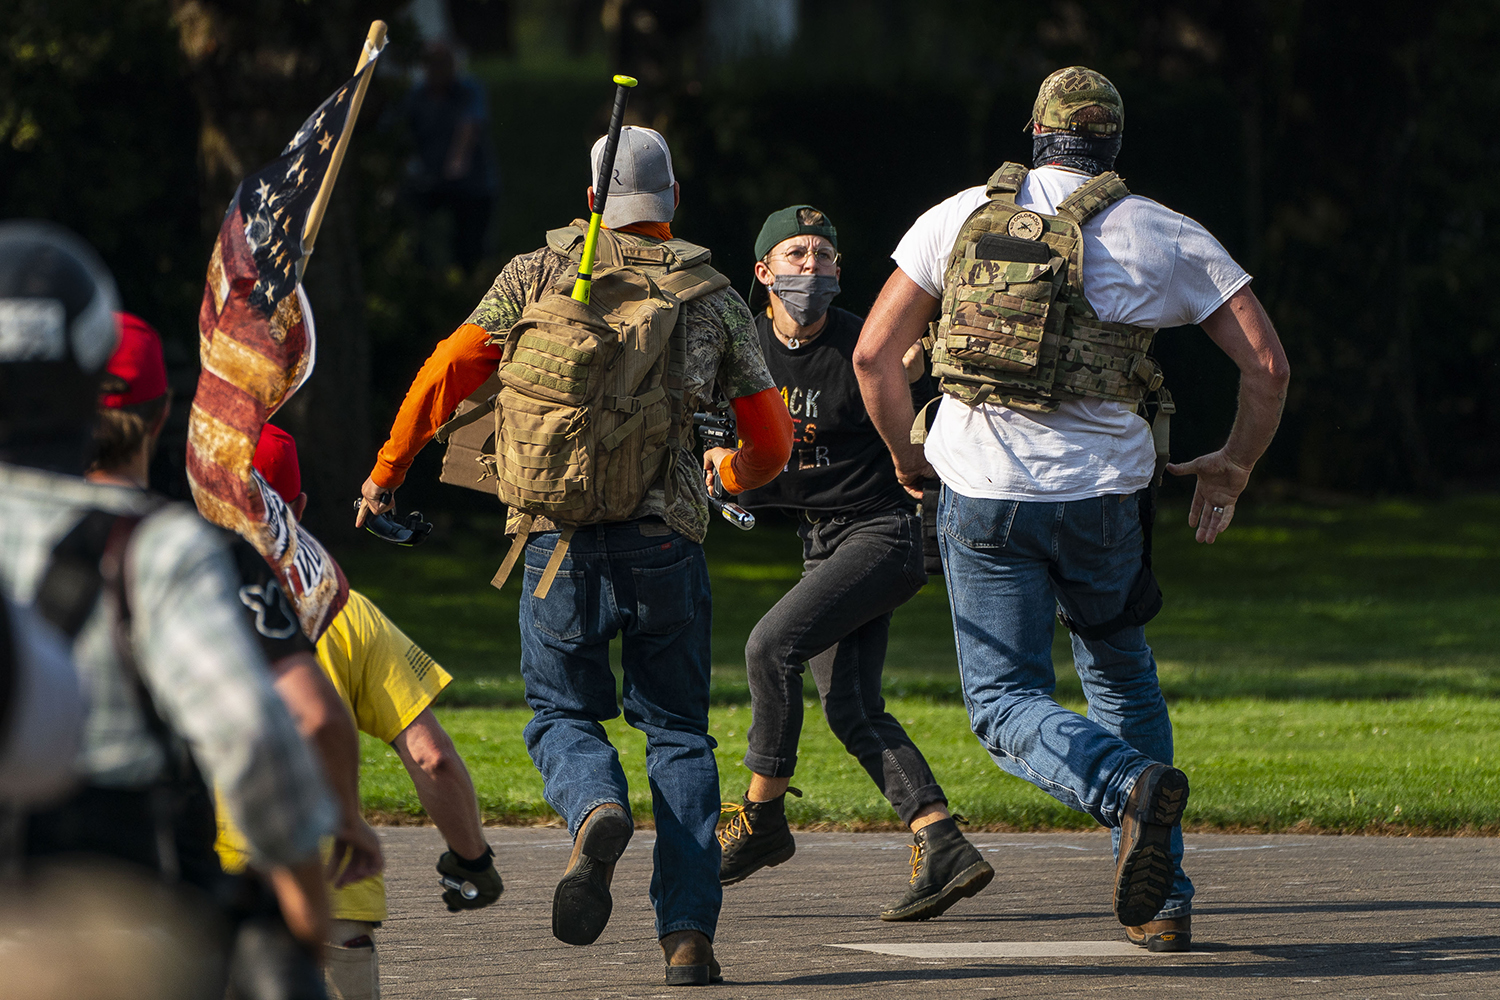 Right-wing demonstrators chase a Black Lives Matter protester after a pro-Trump caravan rally convened at the Oregon State Capitol building in Salem on Sept. 7. David Ryder/Getty Images